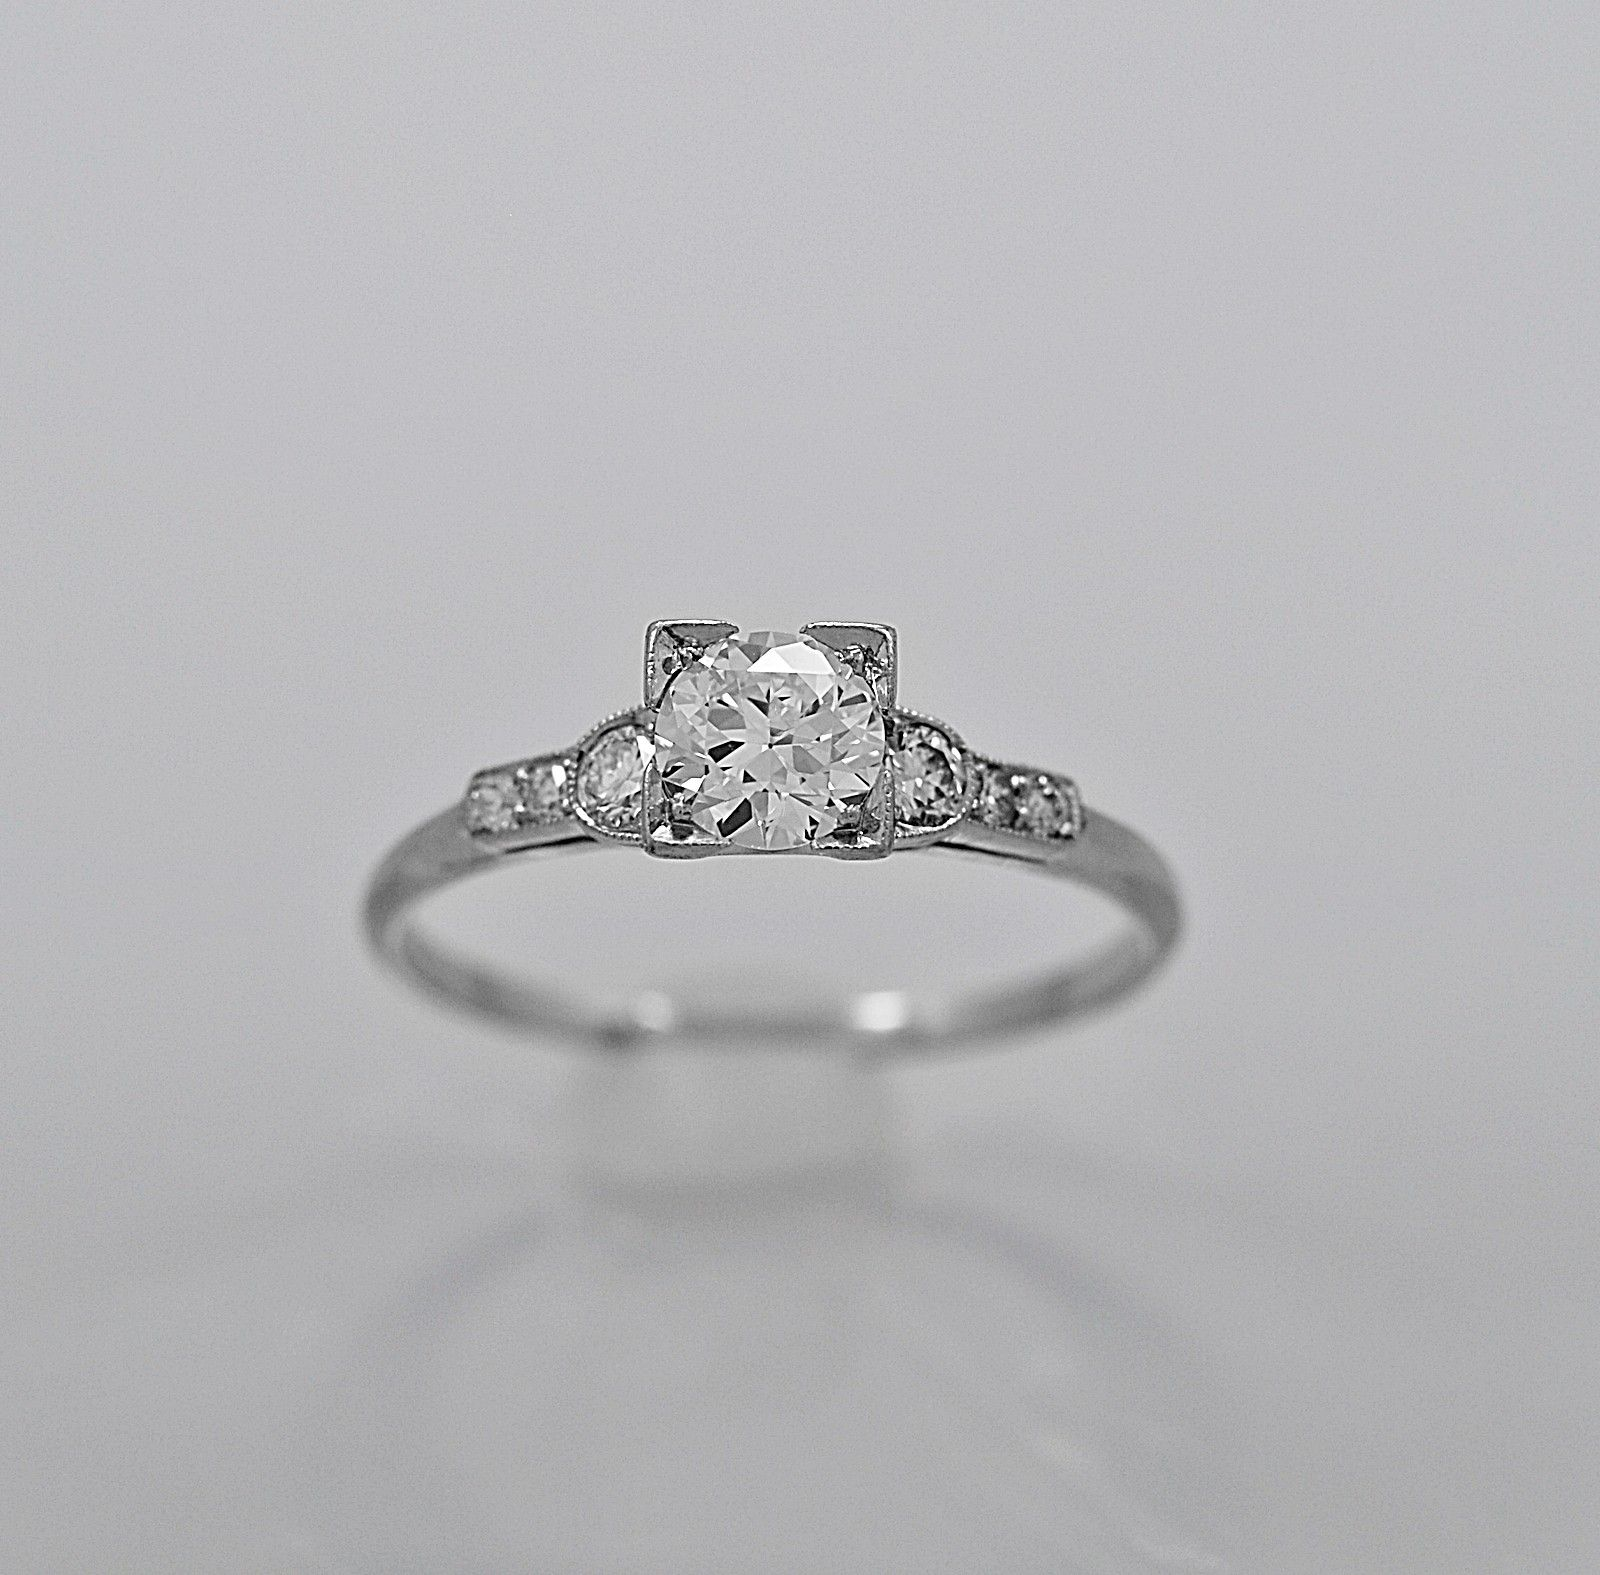 Antique Engagement Ring Bailey Banks Biddle 51ct Diamond Platinum Engagement In 2020 Antique Engagement Rings Vintage Engagement Rings Wedding Rings Vintage